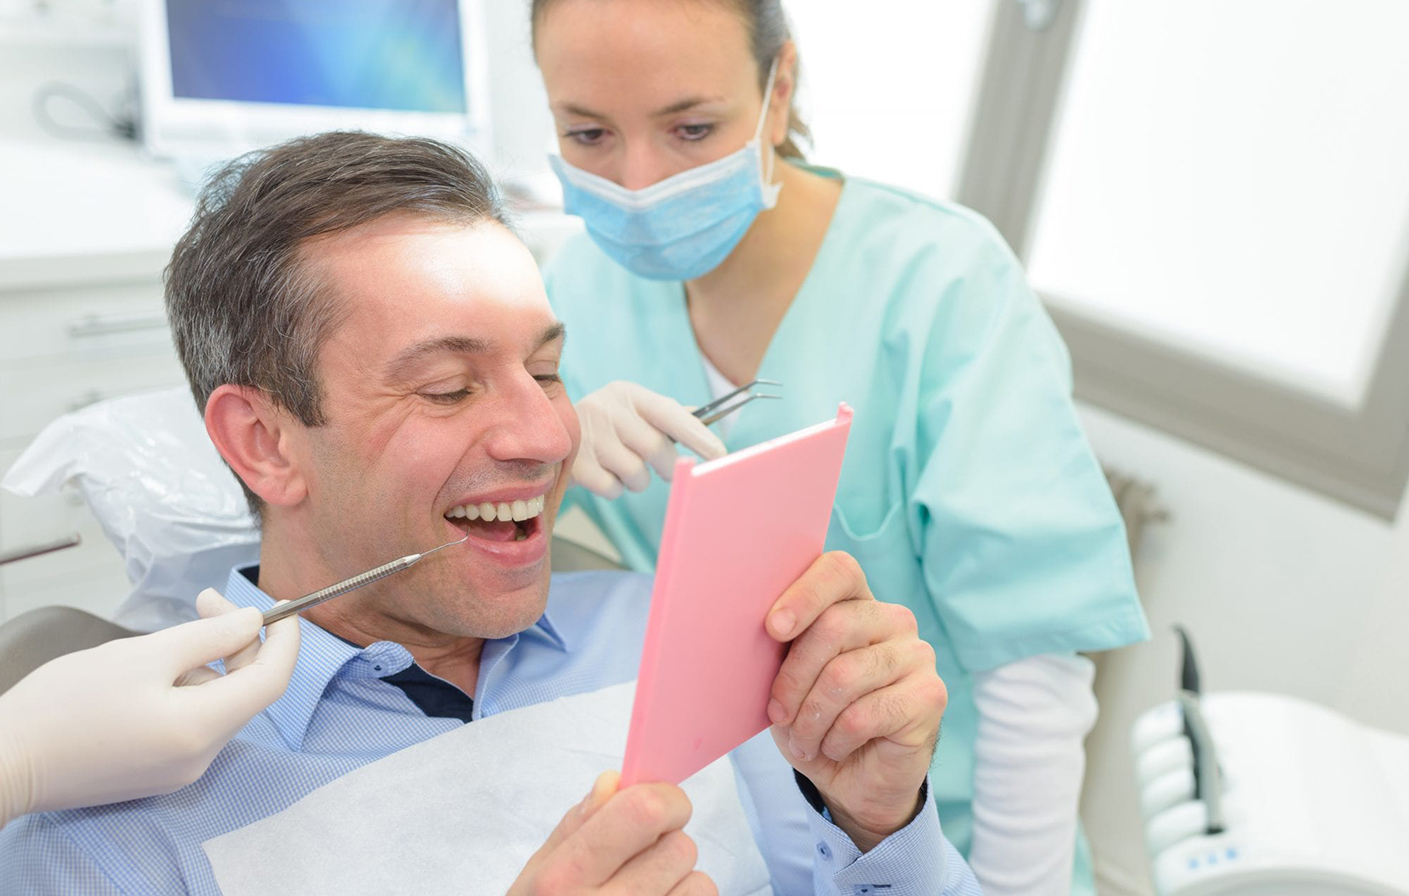 How You Should Prepare For a Dental Appointment